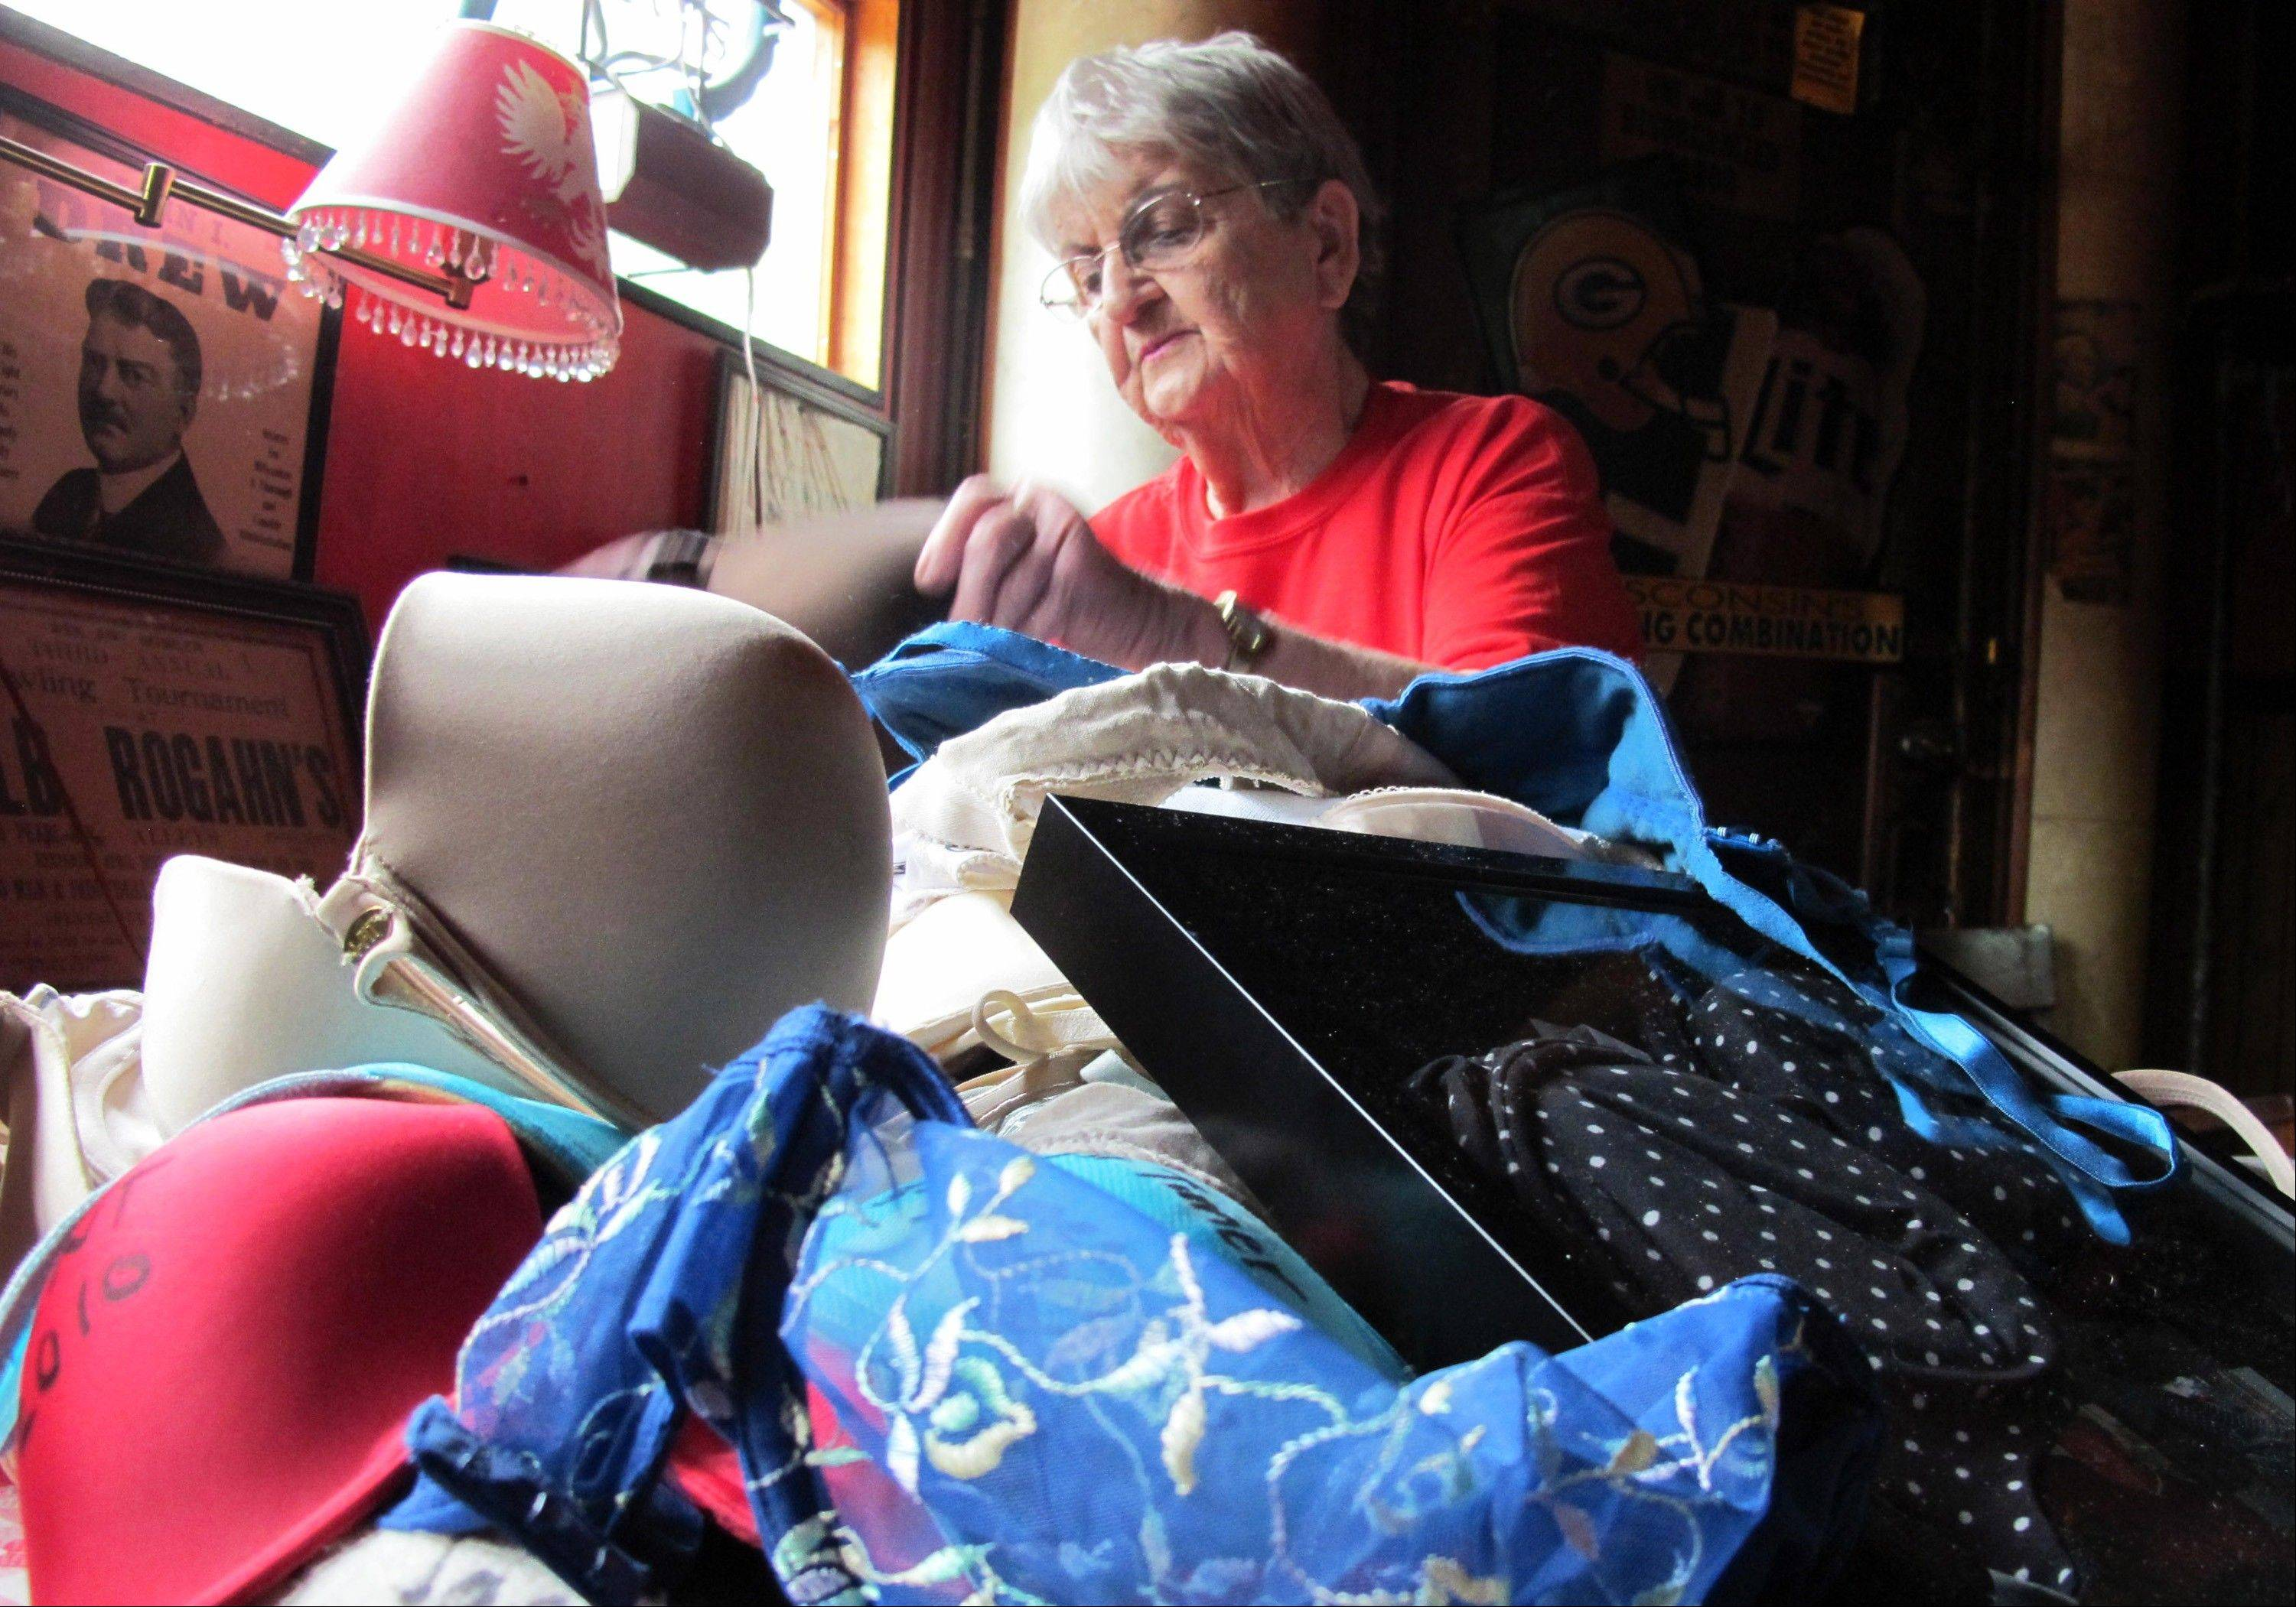 Marcy Skowronski, 87, looks through a pile of bras Friday that used hang from the ceiling of her bar, Holler House, in Milwaukee.